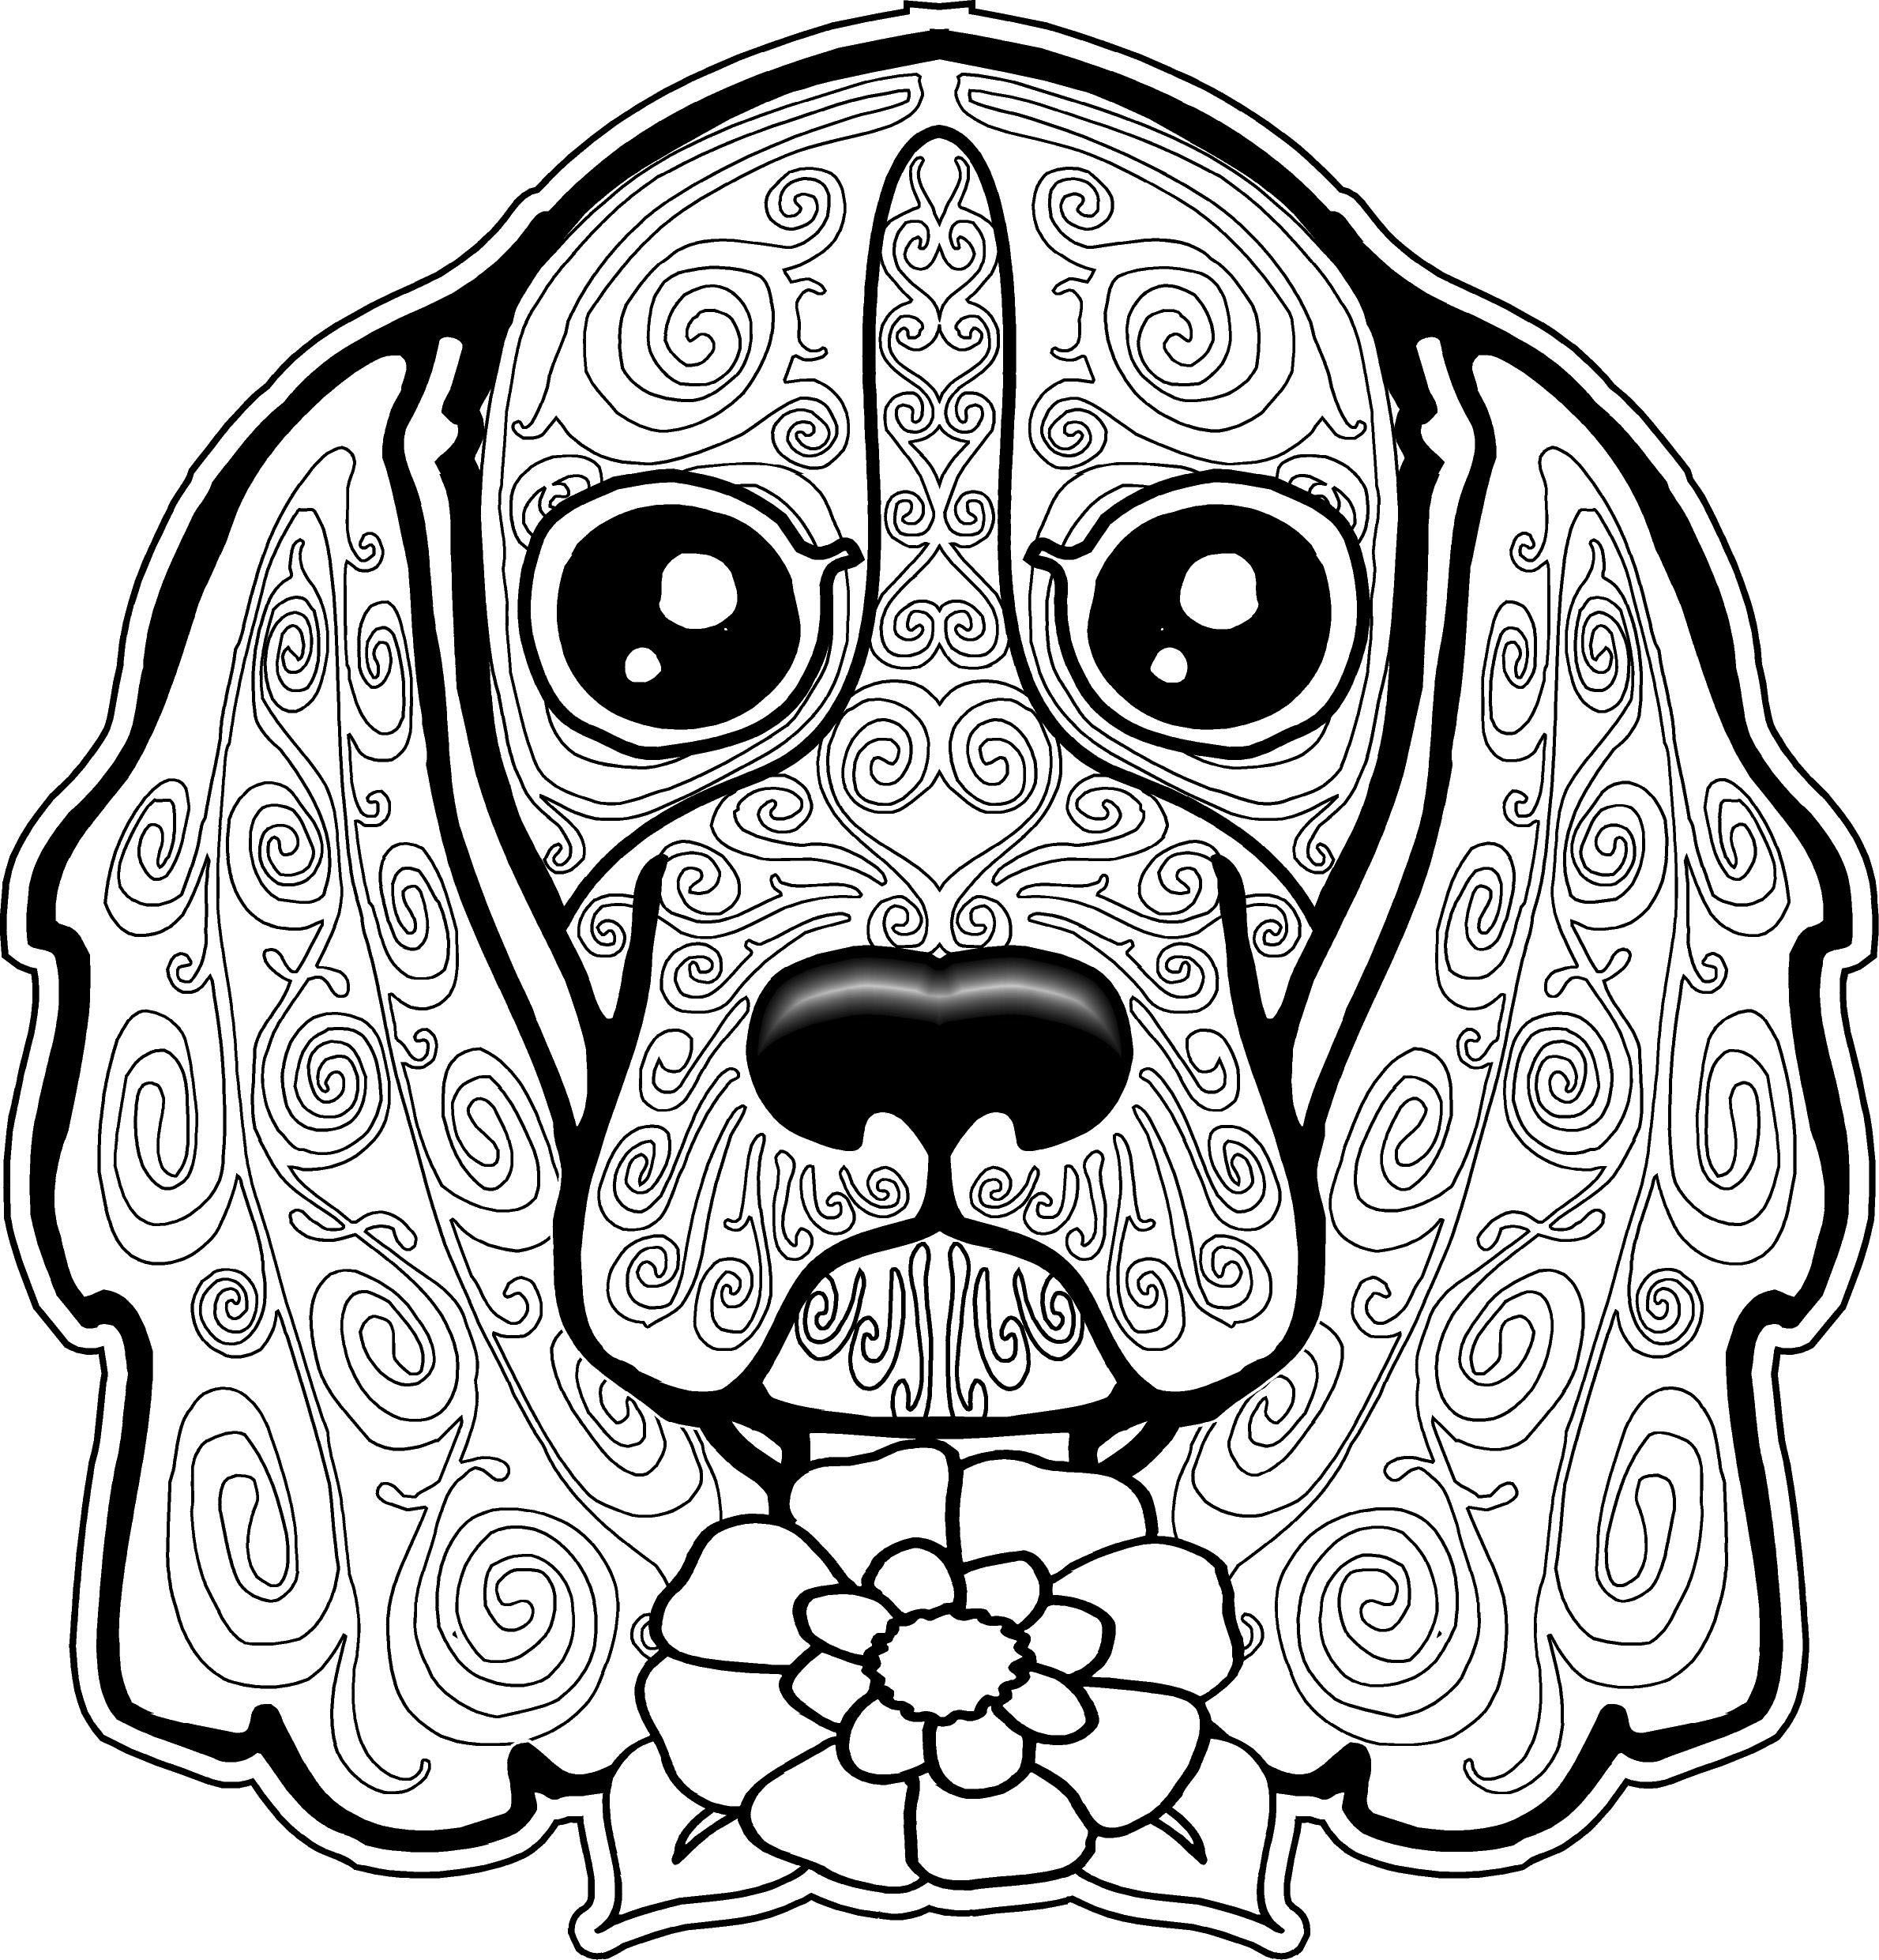 Coloring Page Of A Cute Dog Puppy Coloring Pages Farm Animal Coloring Pages Dog Coloring Page